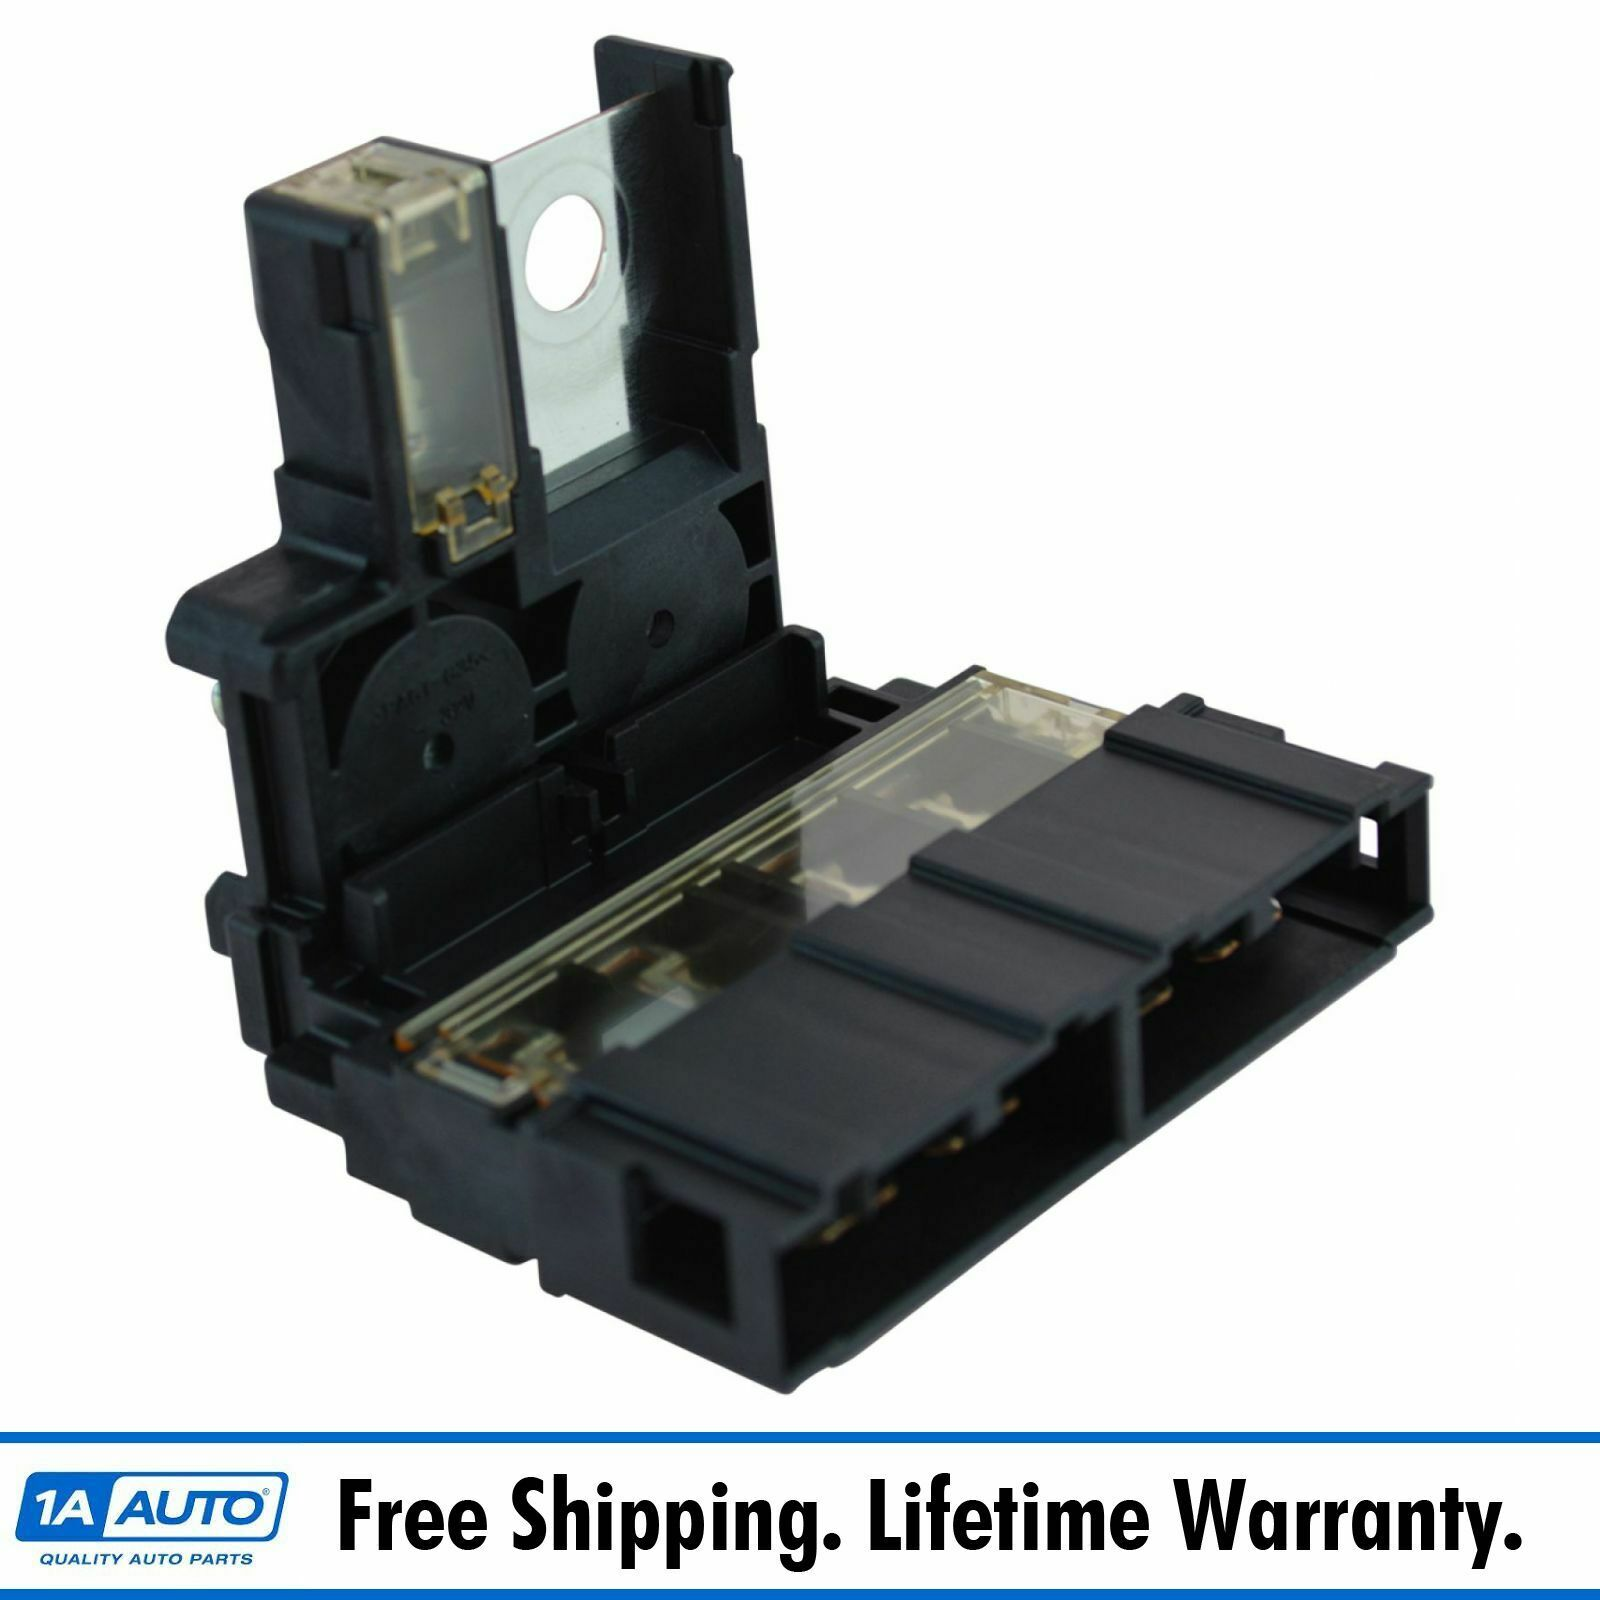 05 Ram 1500 Fuse Box From Dorman Electrical Wiring Diagrams Battery And Nissan Block Holder Link Connector For Maxima Chrysler 200